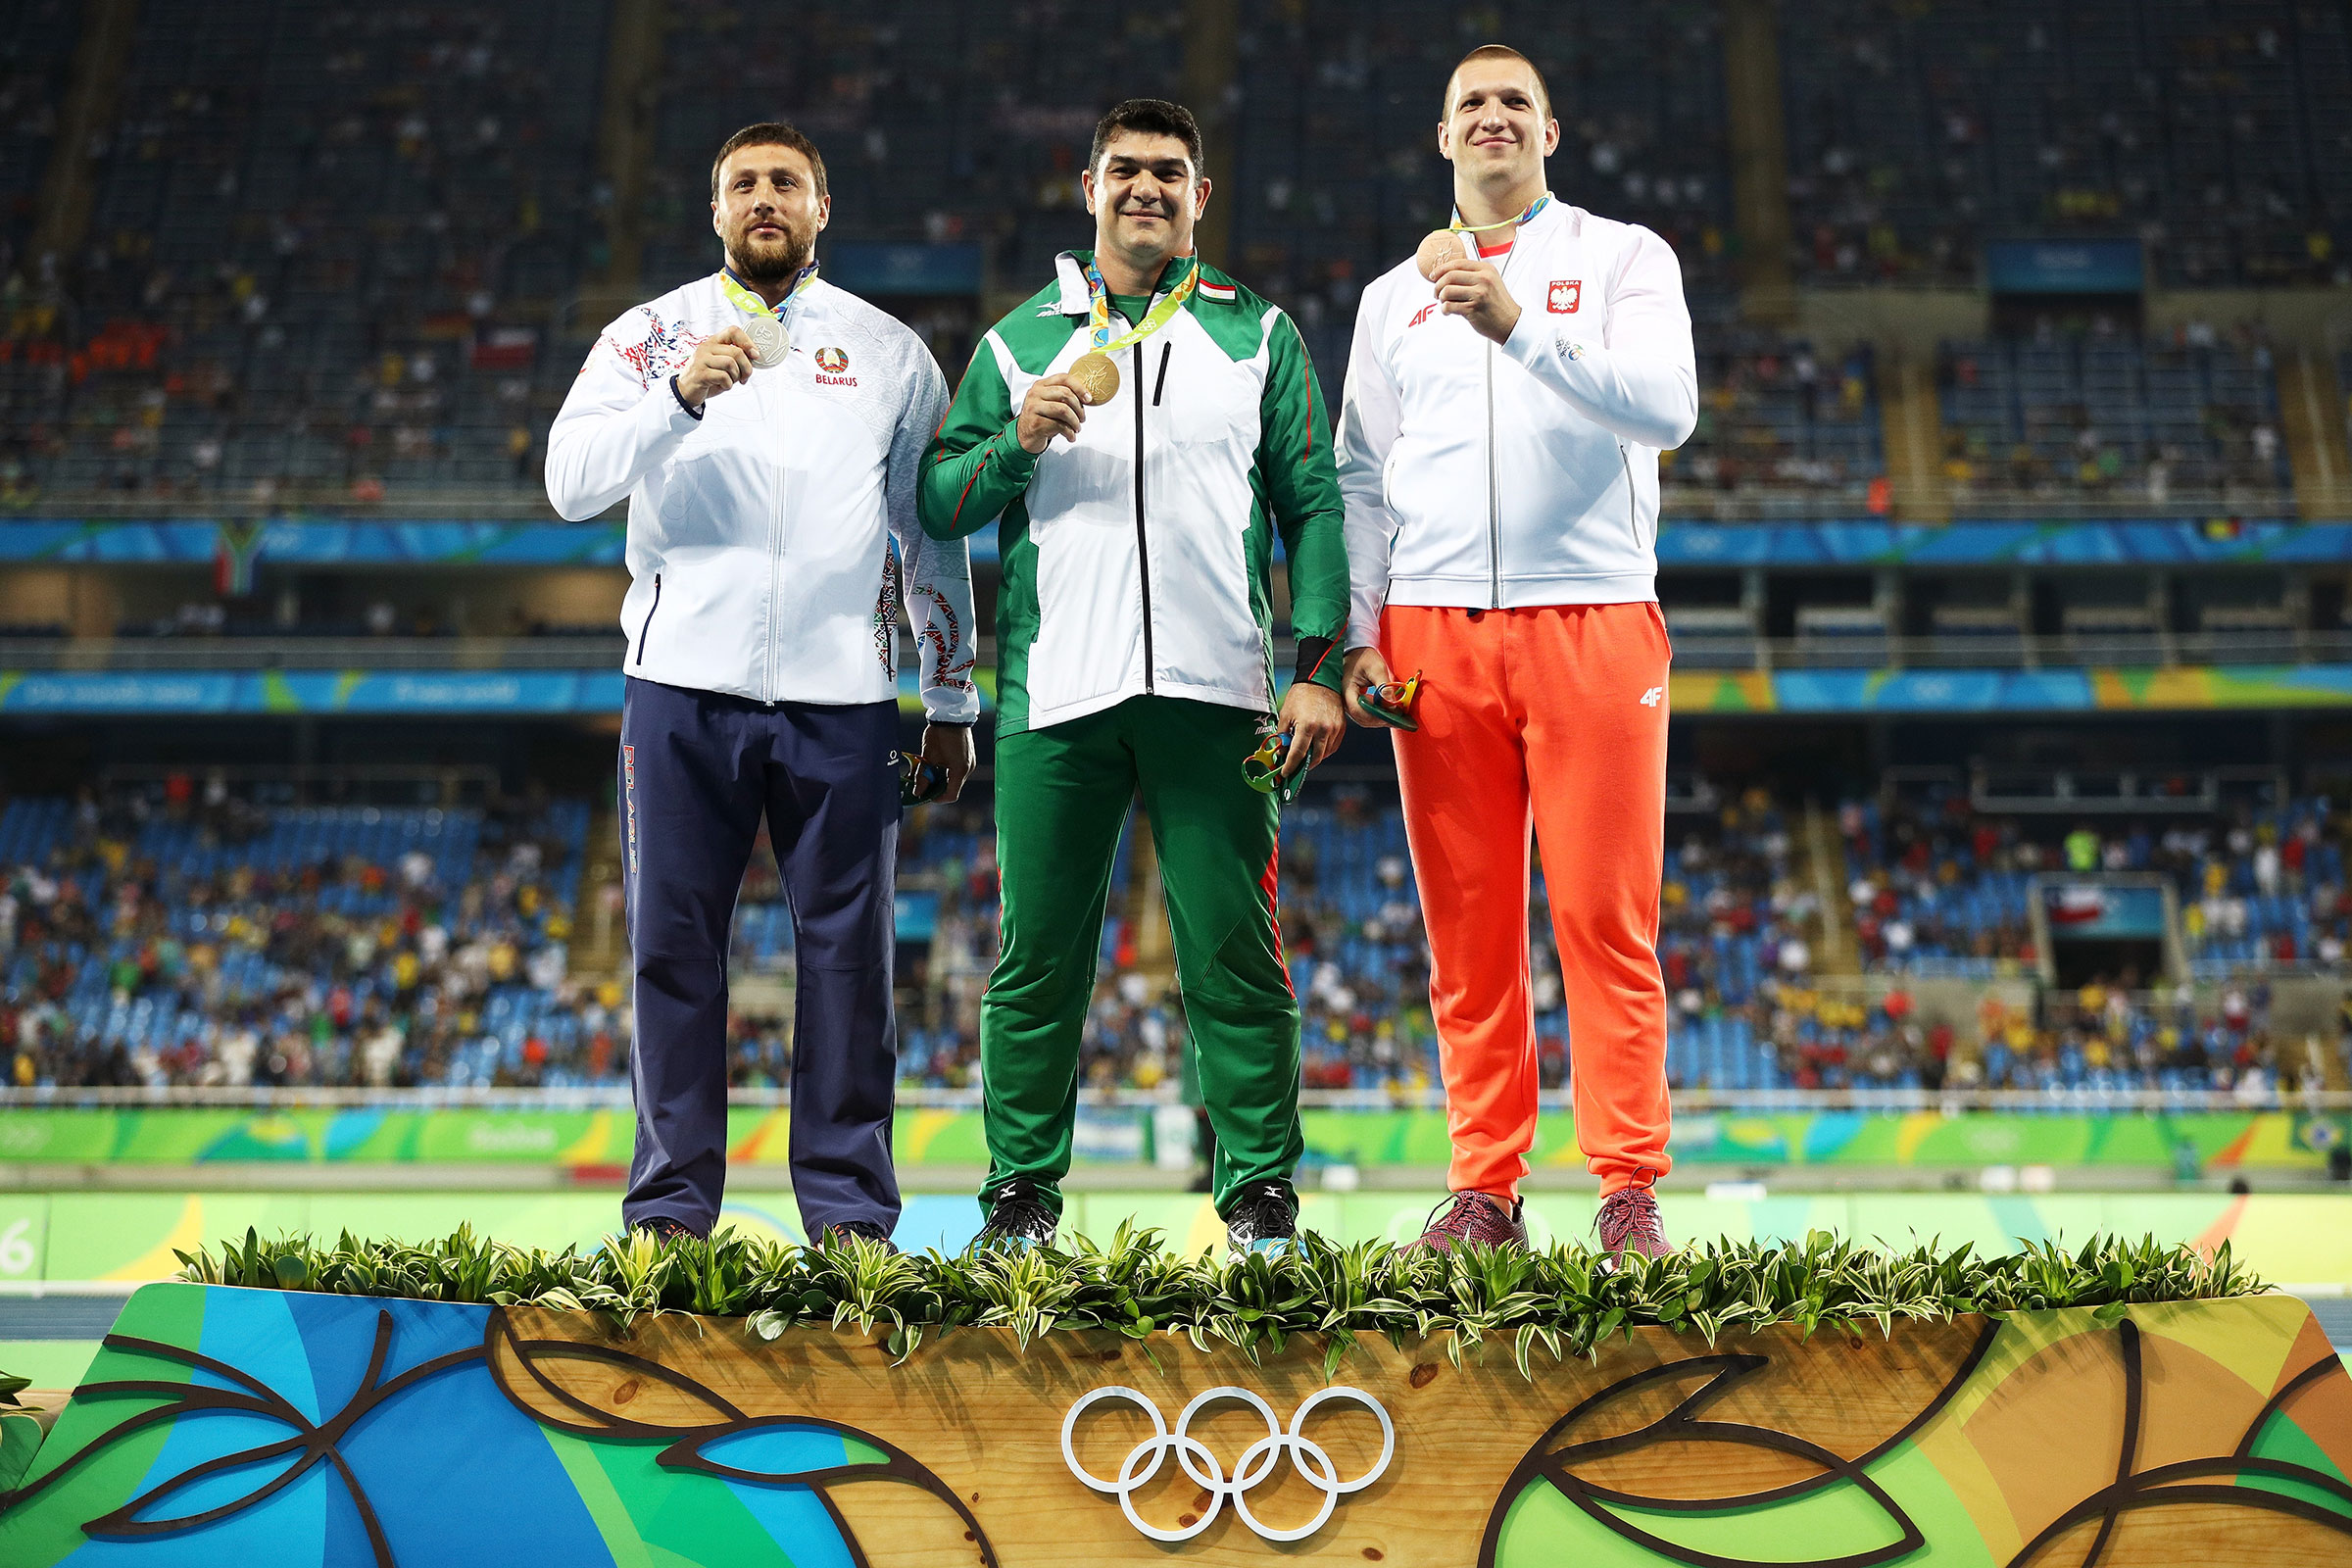 Athletics - Men's Hammer Throw